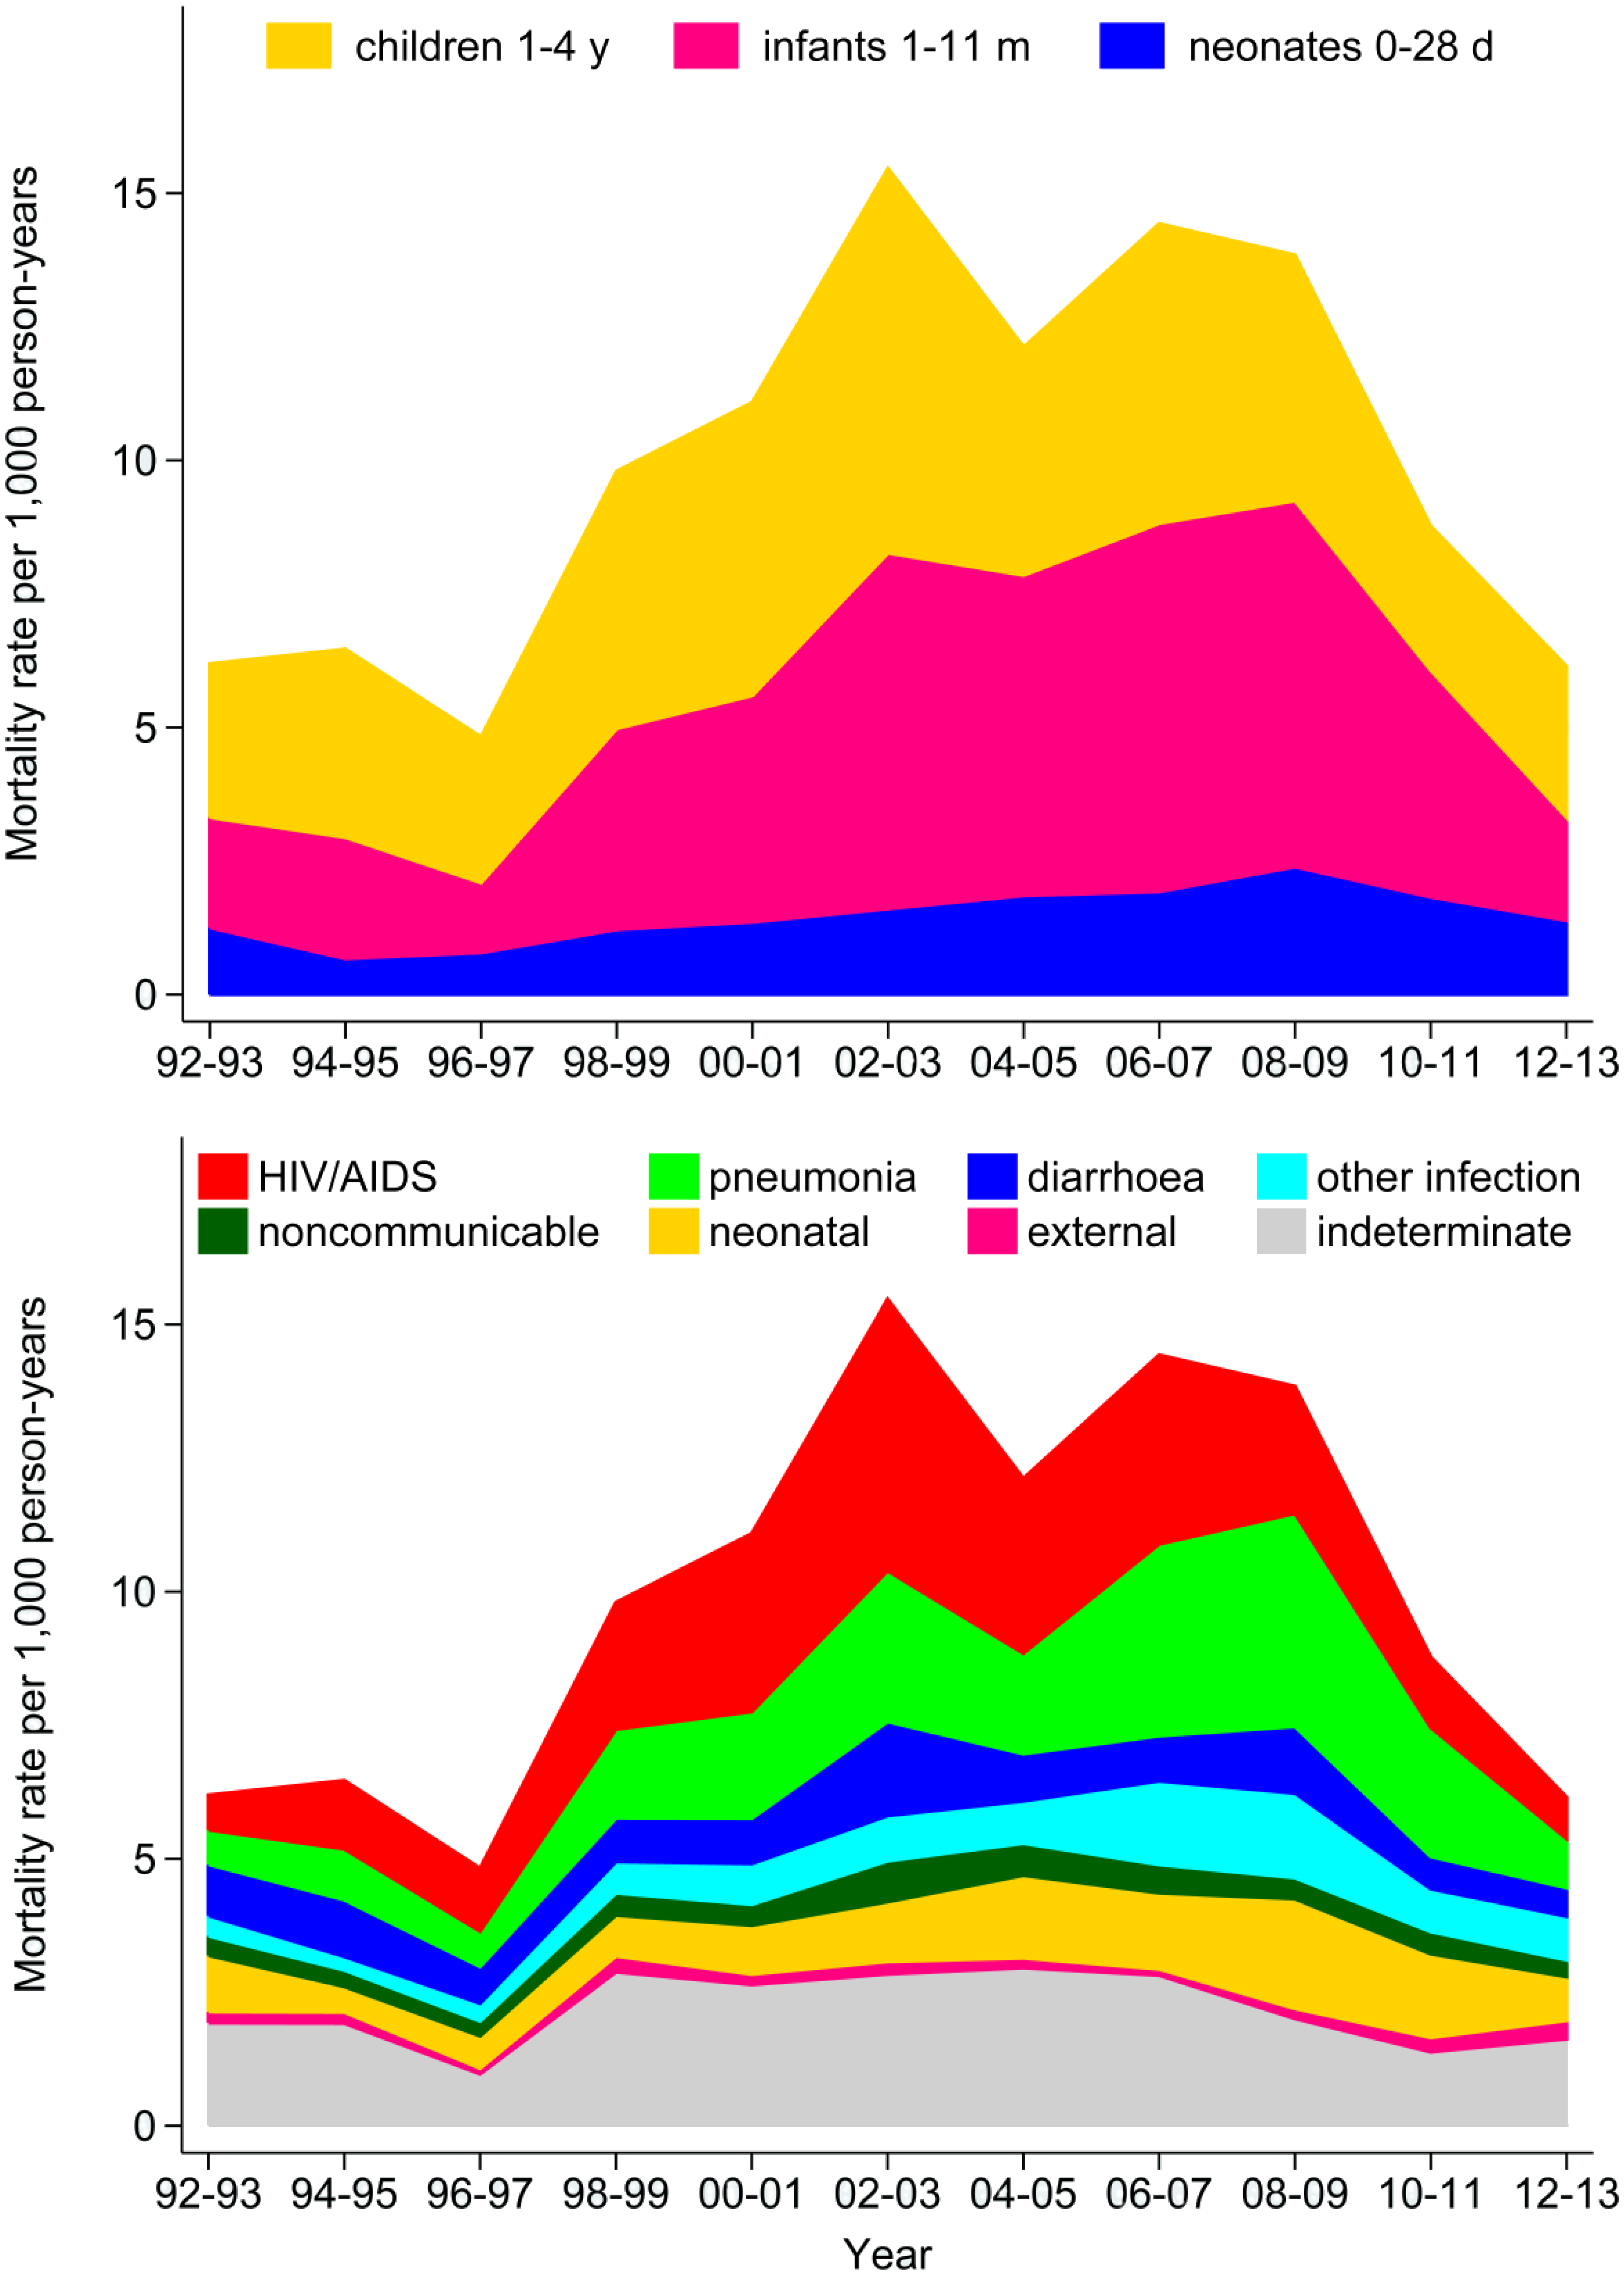 Under-five mortality rates at the Agincourt site from 1992 to 2013, by age group and by cause of death category.